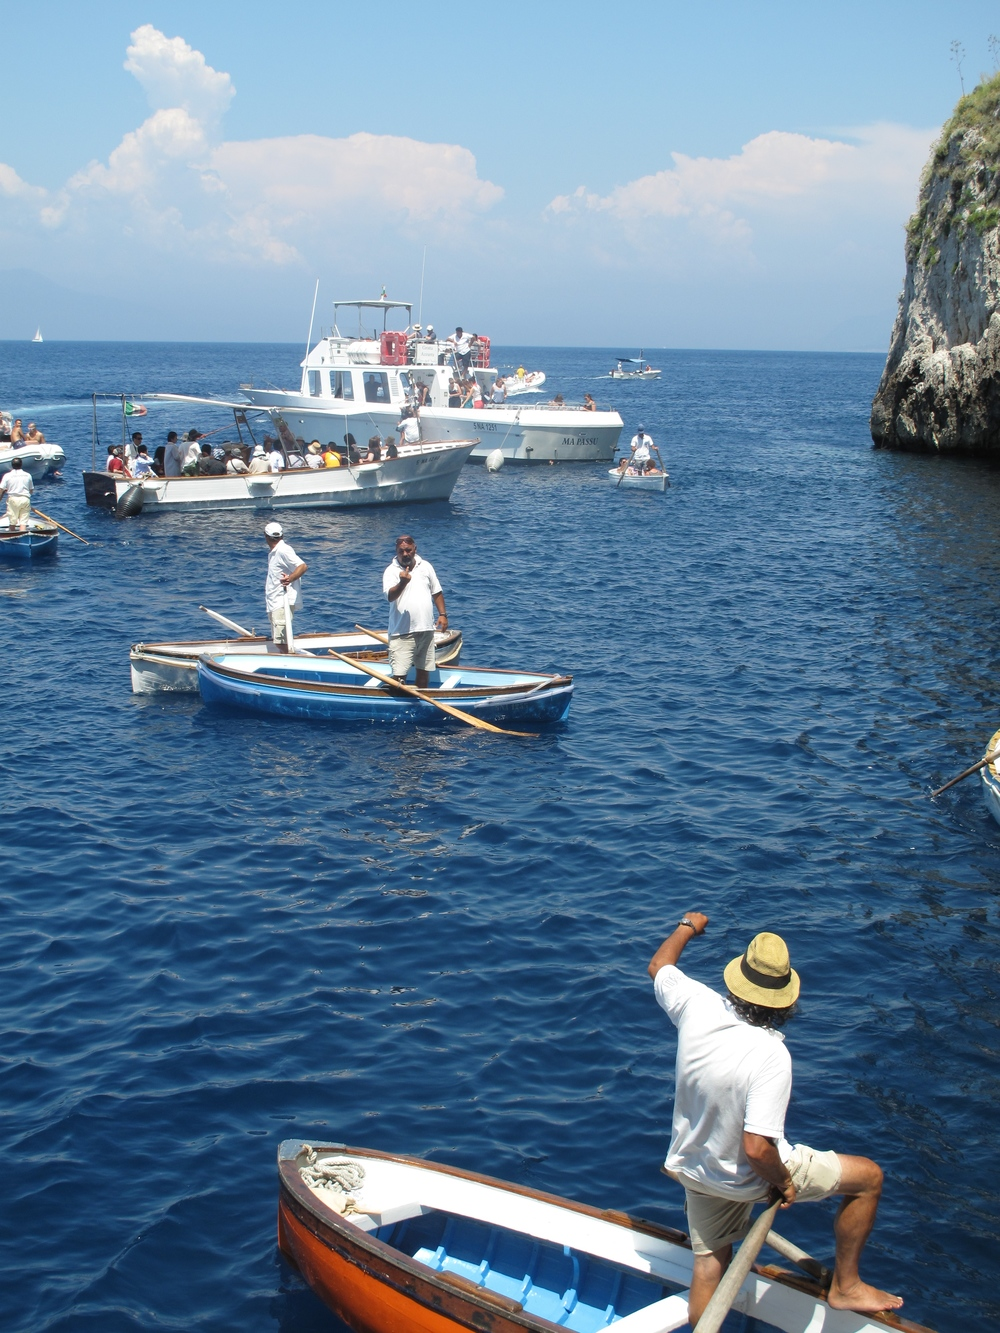 Boats near the Blue Grotto, and angry boat men